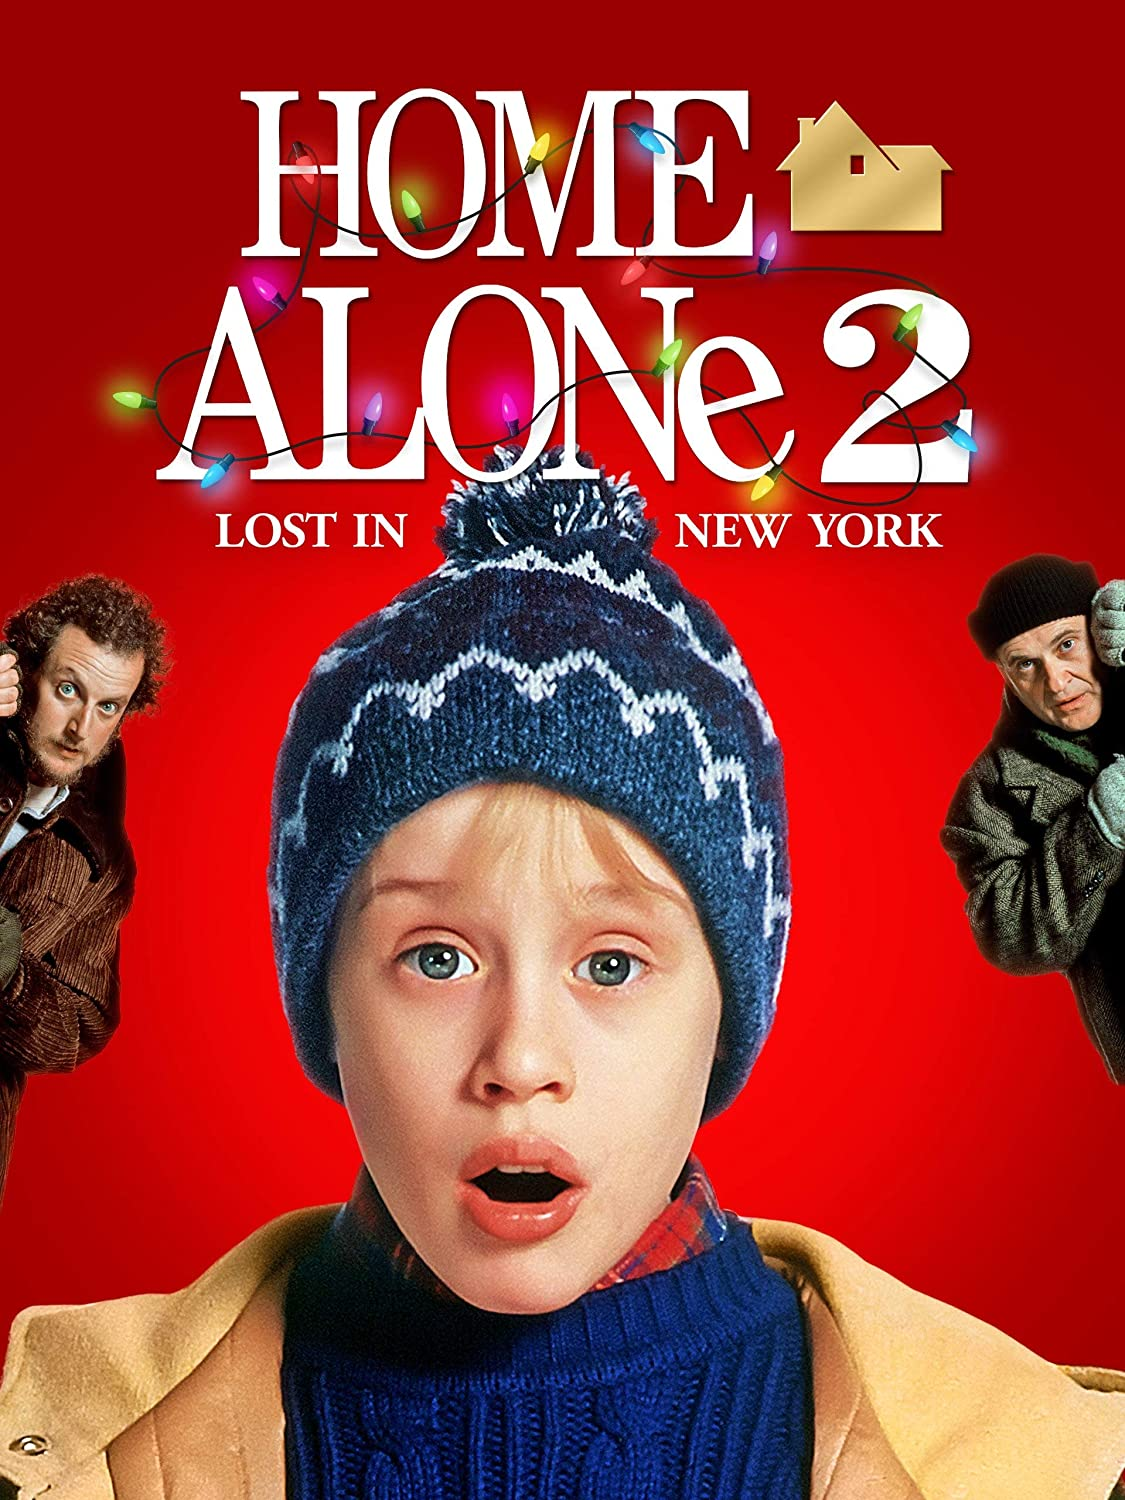 HOME ALONE 200 LOST IN NEW YORK   HOME ALONE 200 LOST IN NEW YORK 20 ...